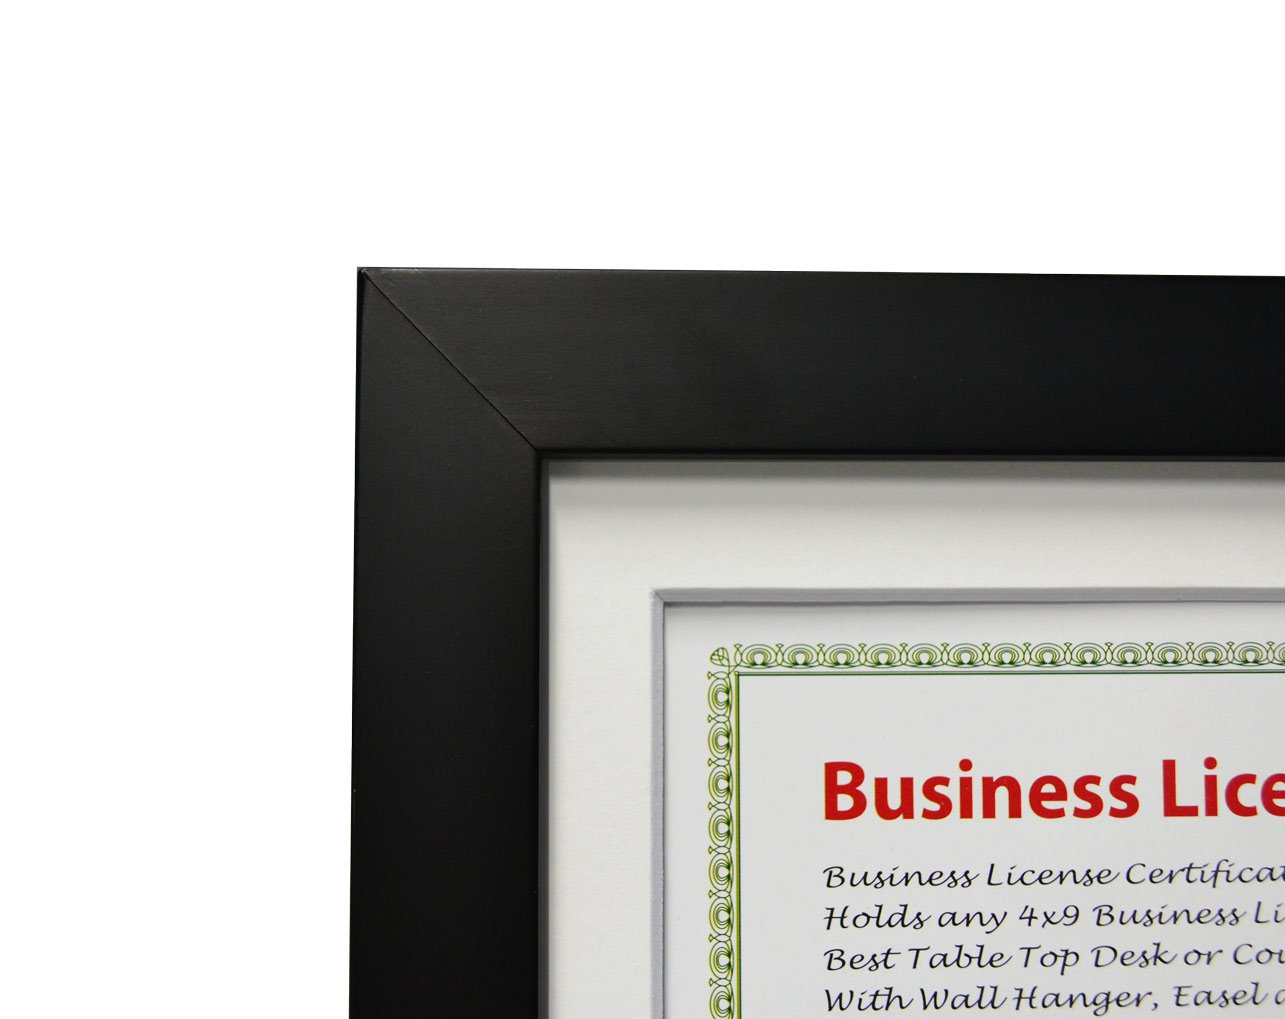 Golden State Art 5x10 Wood Frame for 4x9 Business License Certificate with White Mat & Table-top Display, Black by Golden State Art (Image #3)